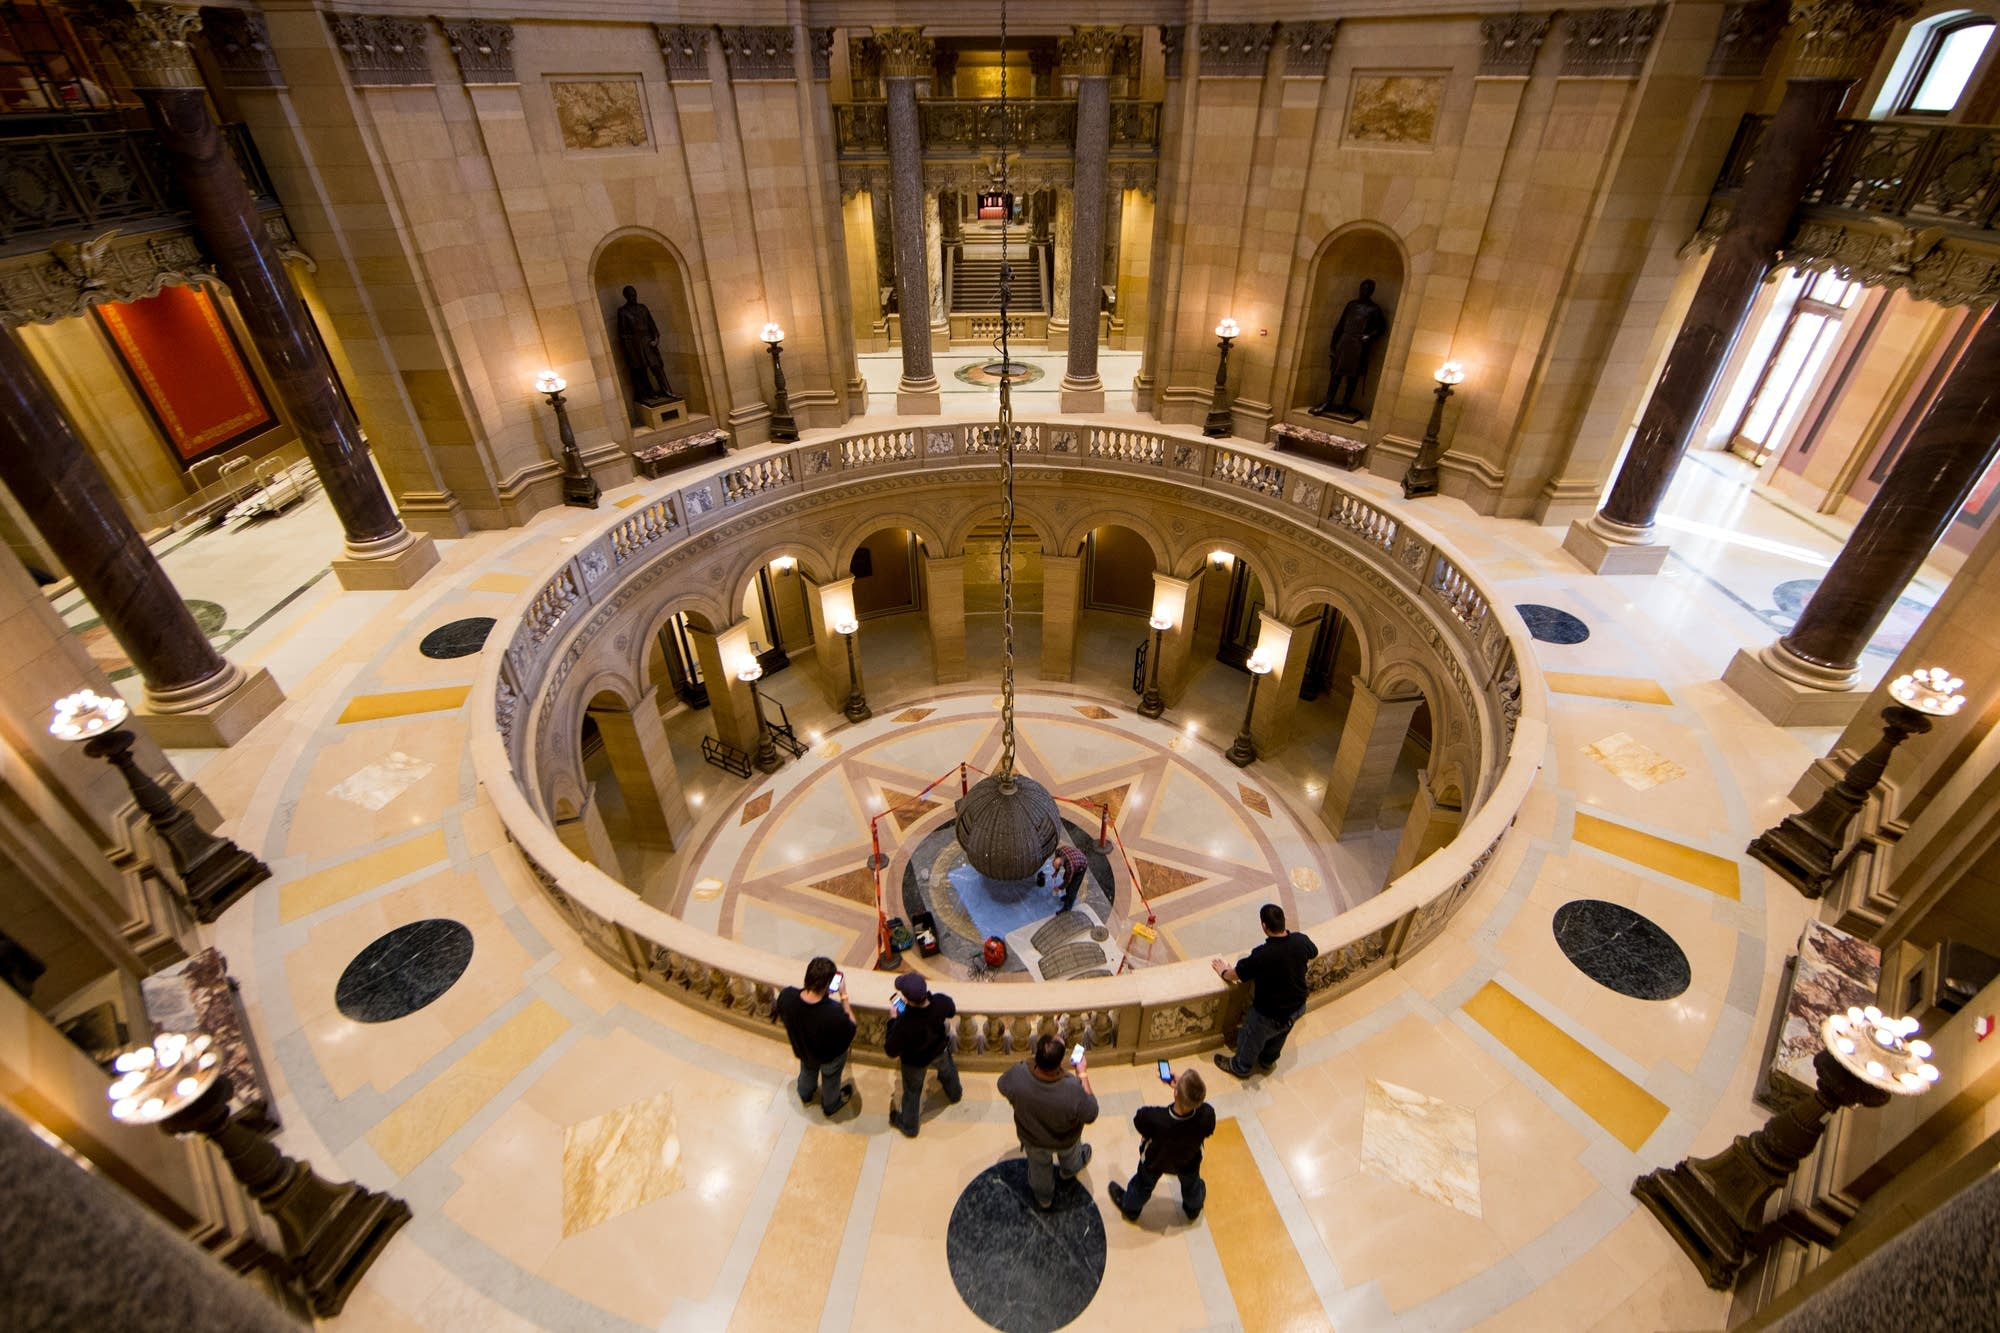 The Rotunda from the third floor.